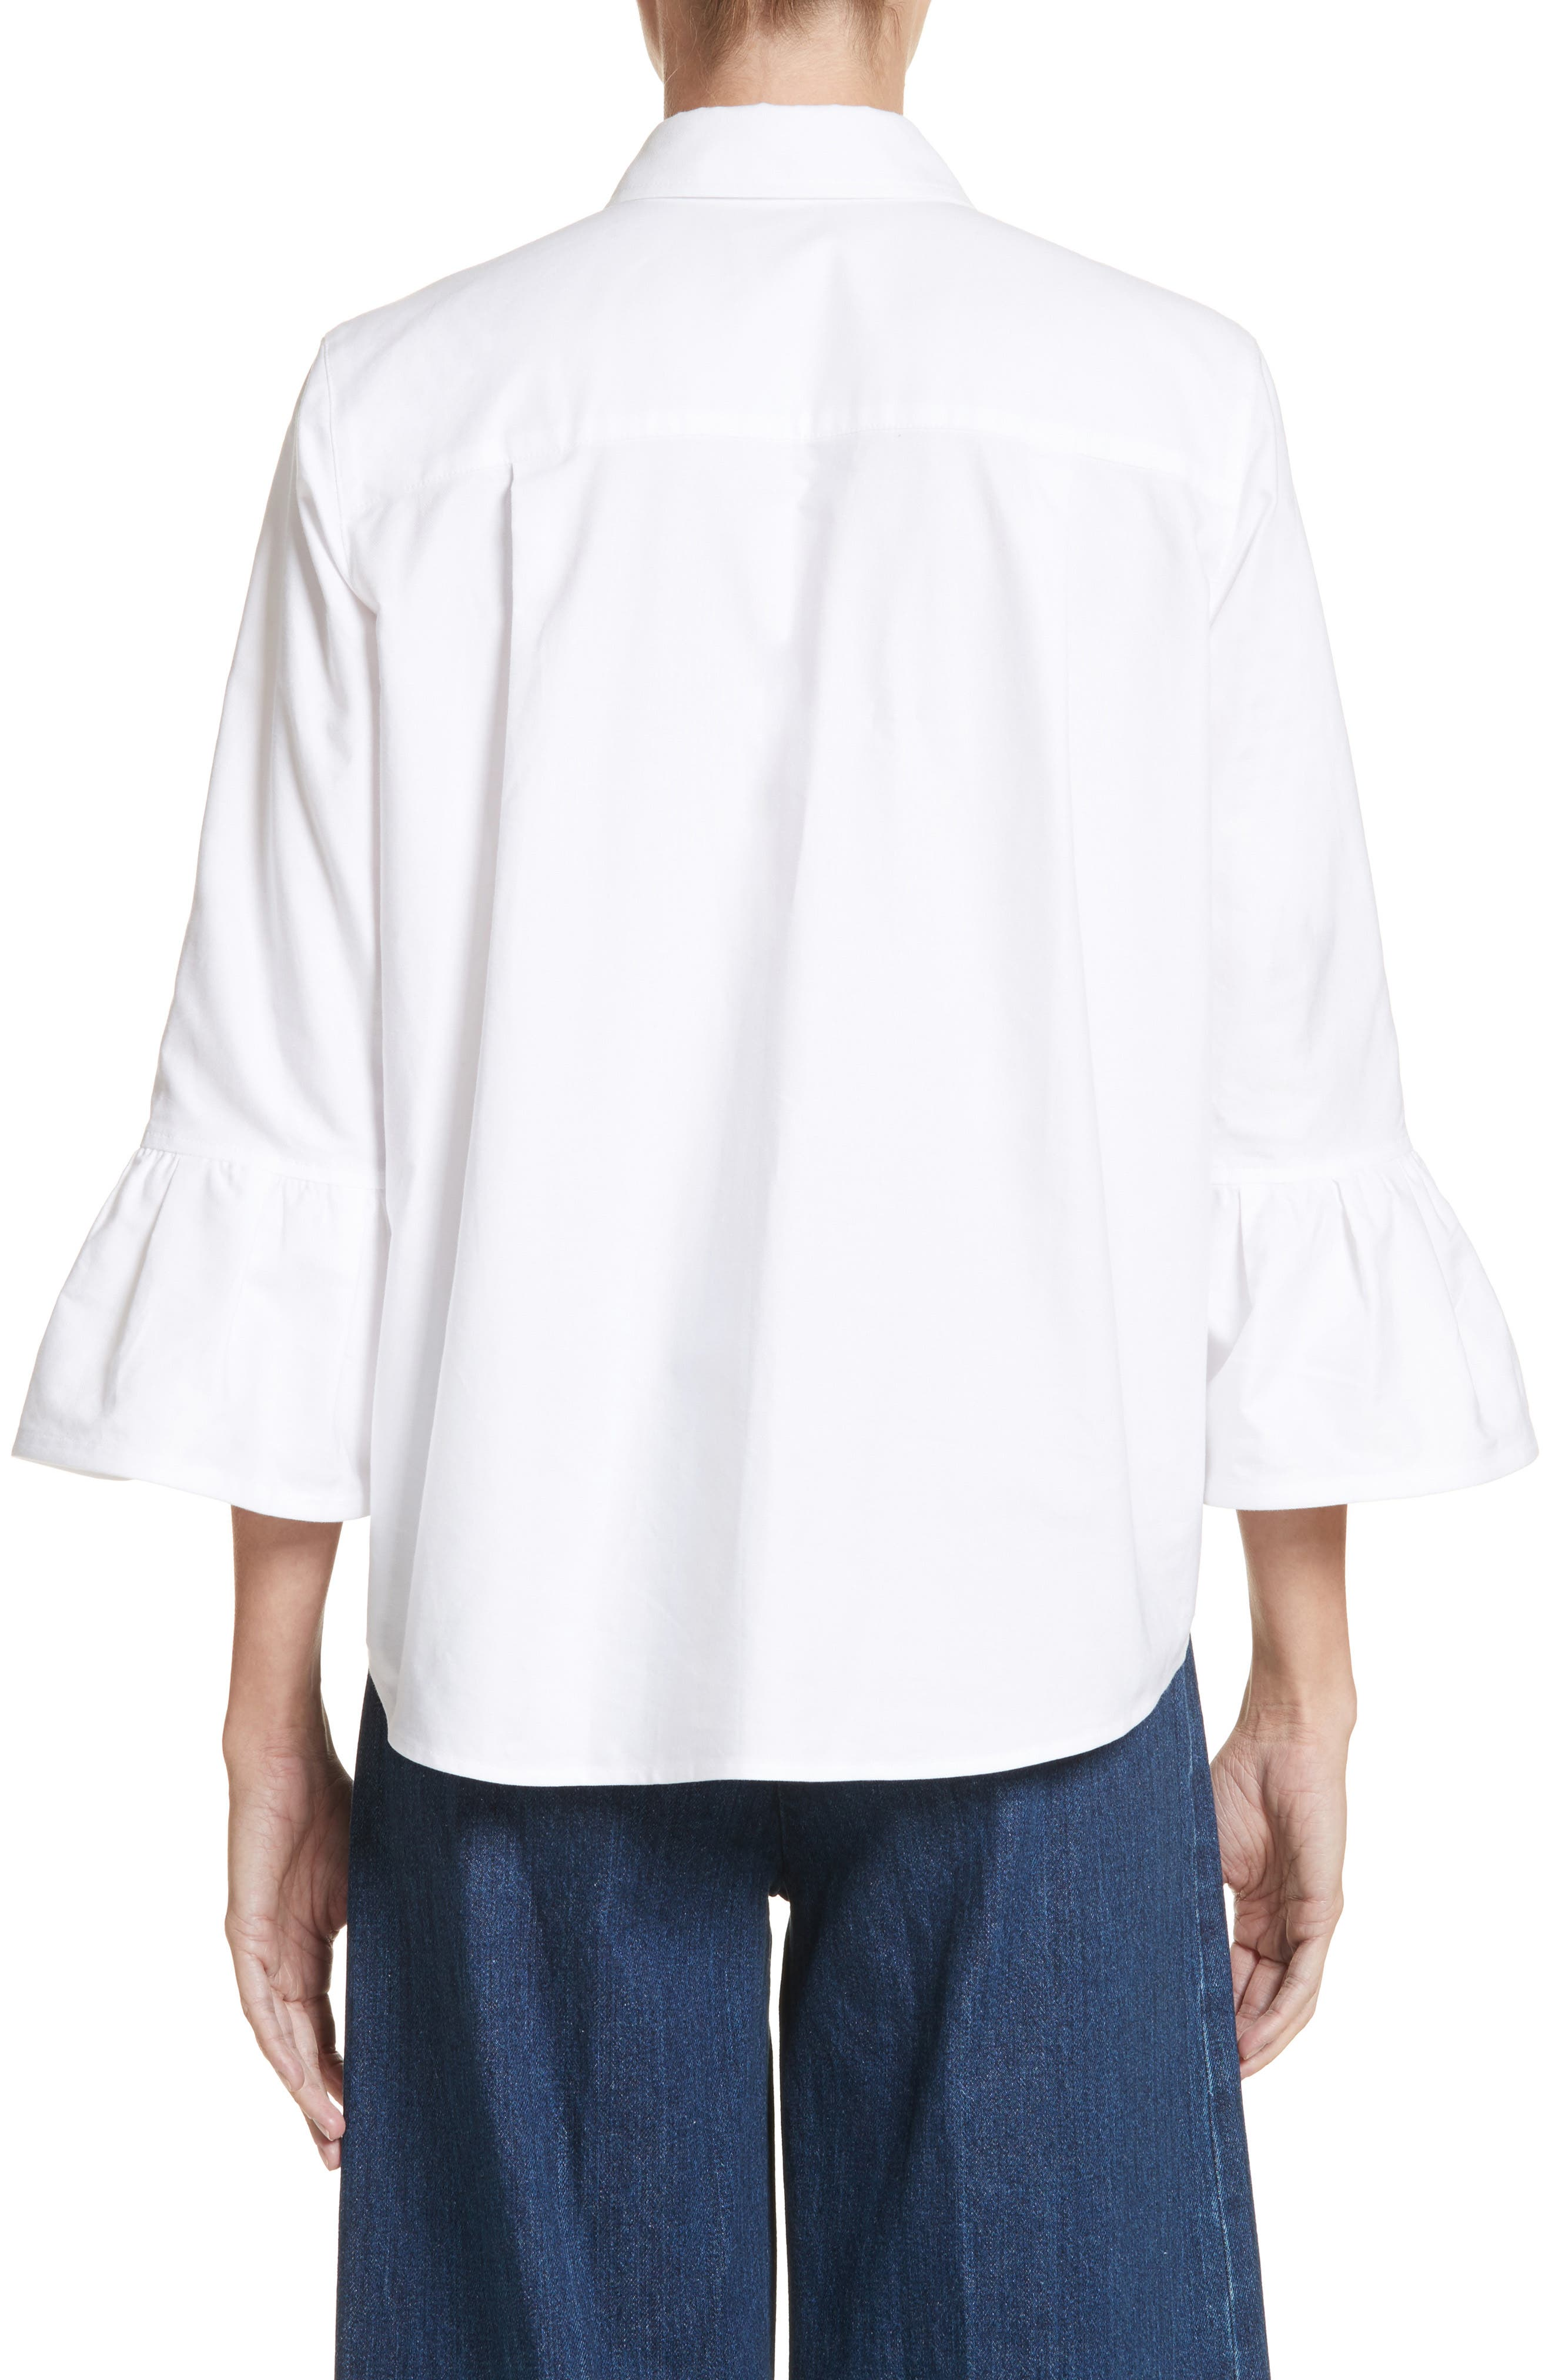 Bell Sleeve Cotton Top,                             Alternate thumbnail 2, color,                             100